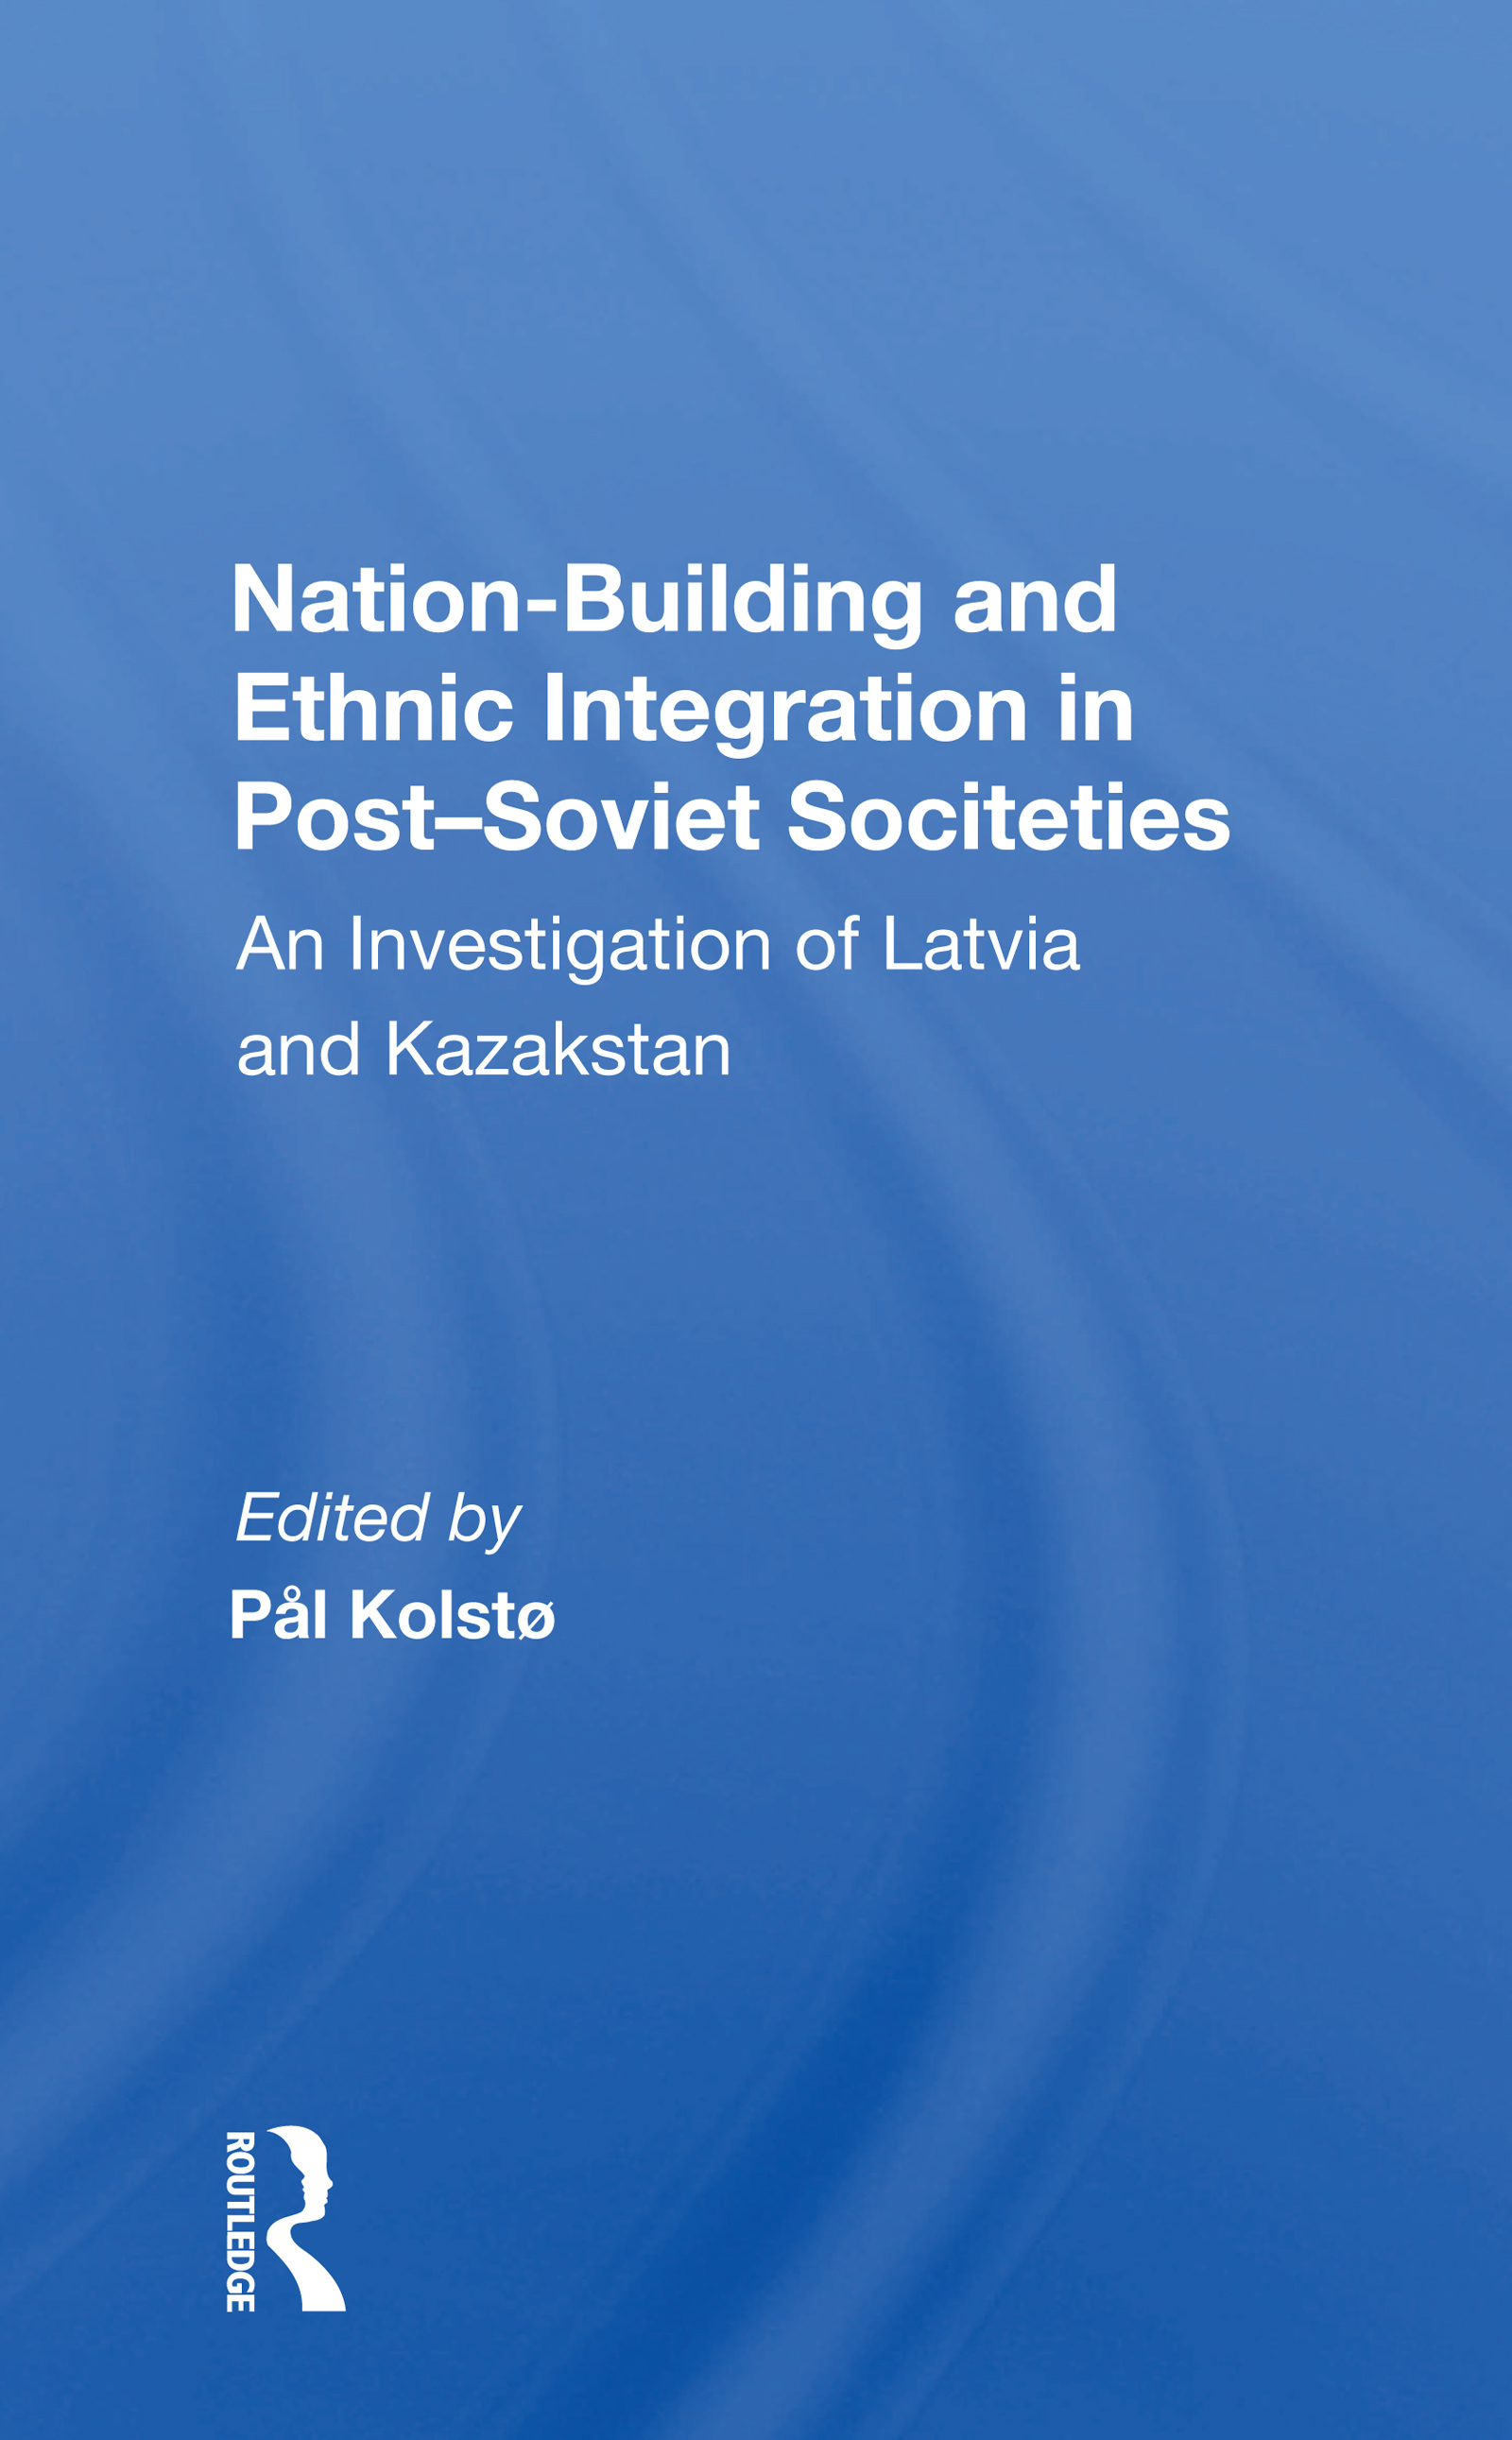 Nation-Building and Ethnic Integration in Post-Soviet Societies